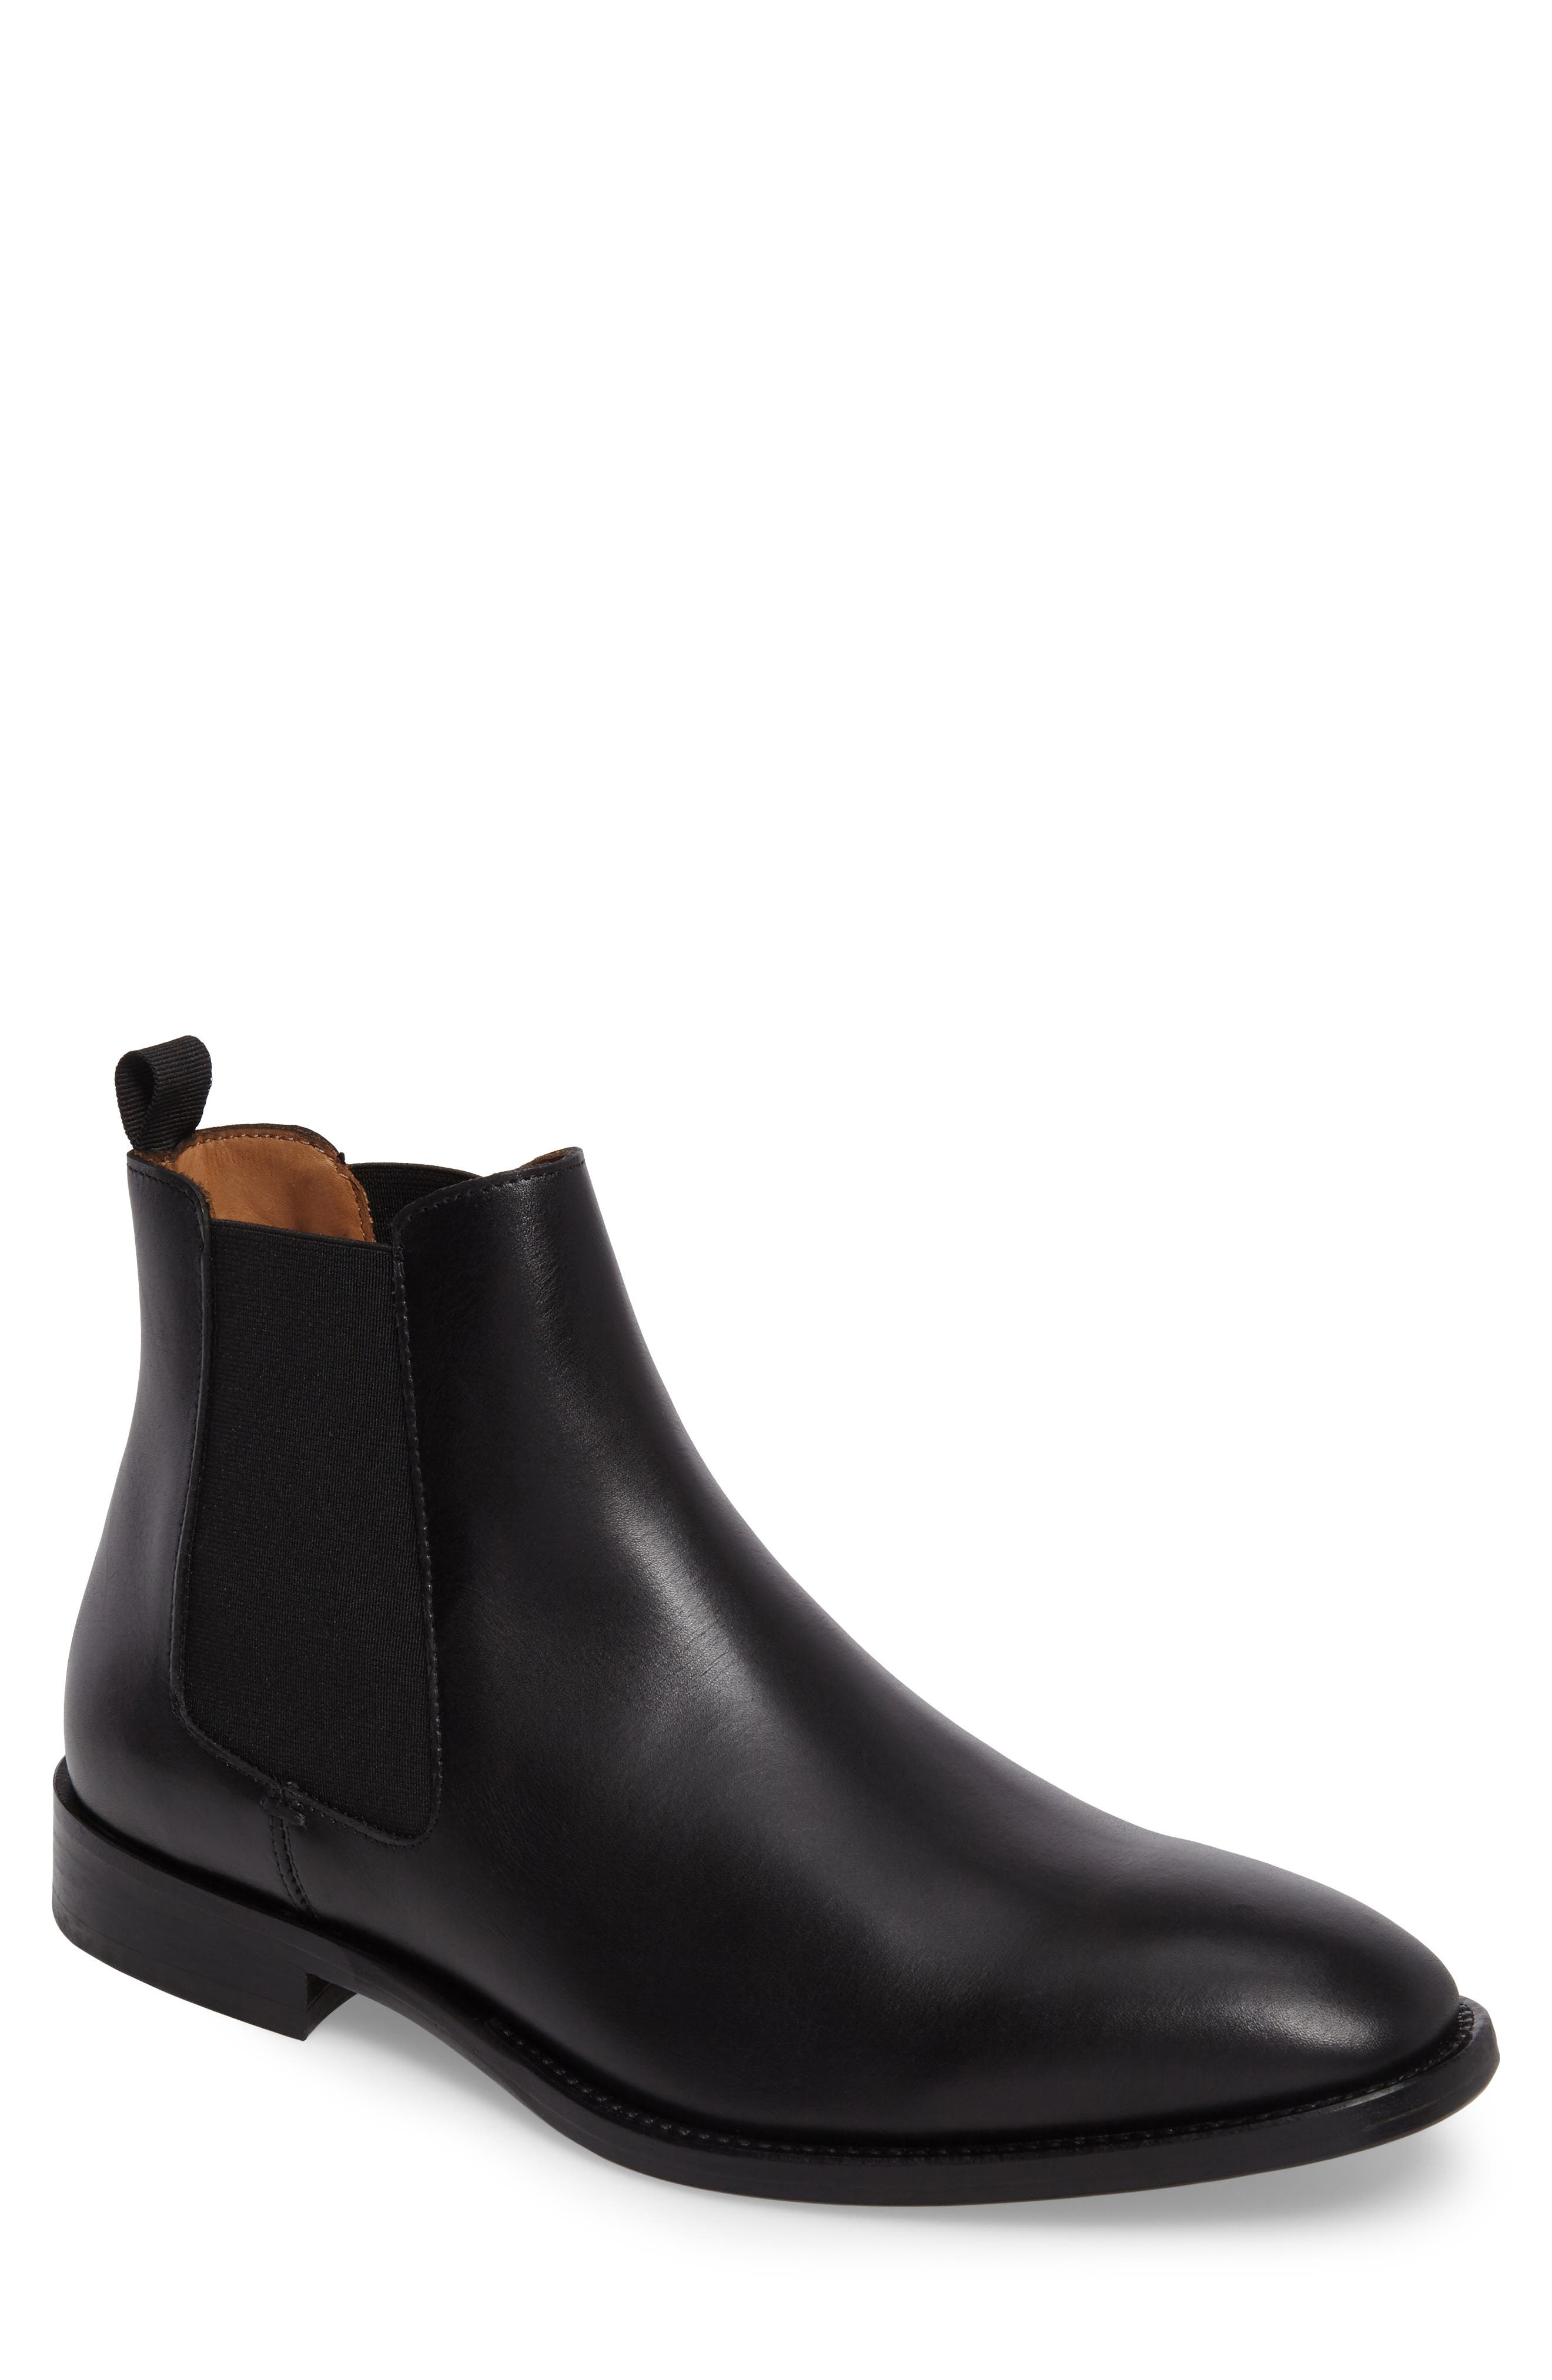 Haldien Chelsea Boot,                         Main,                         color, 001